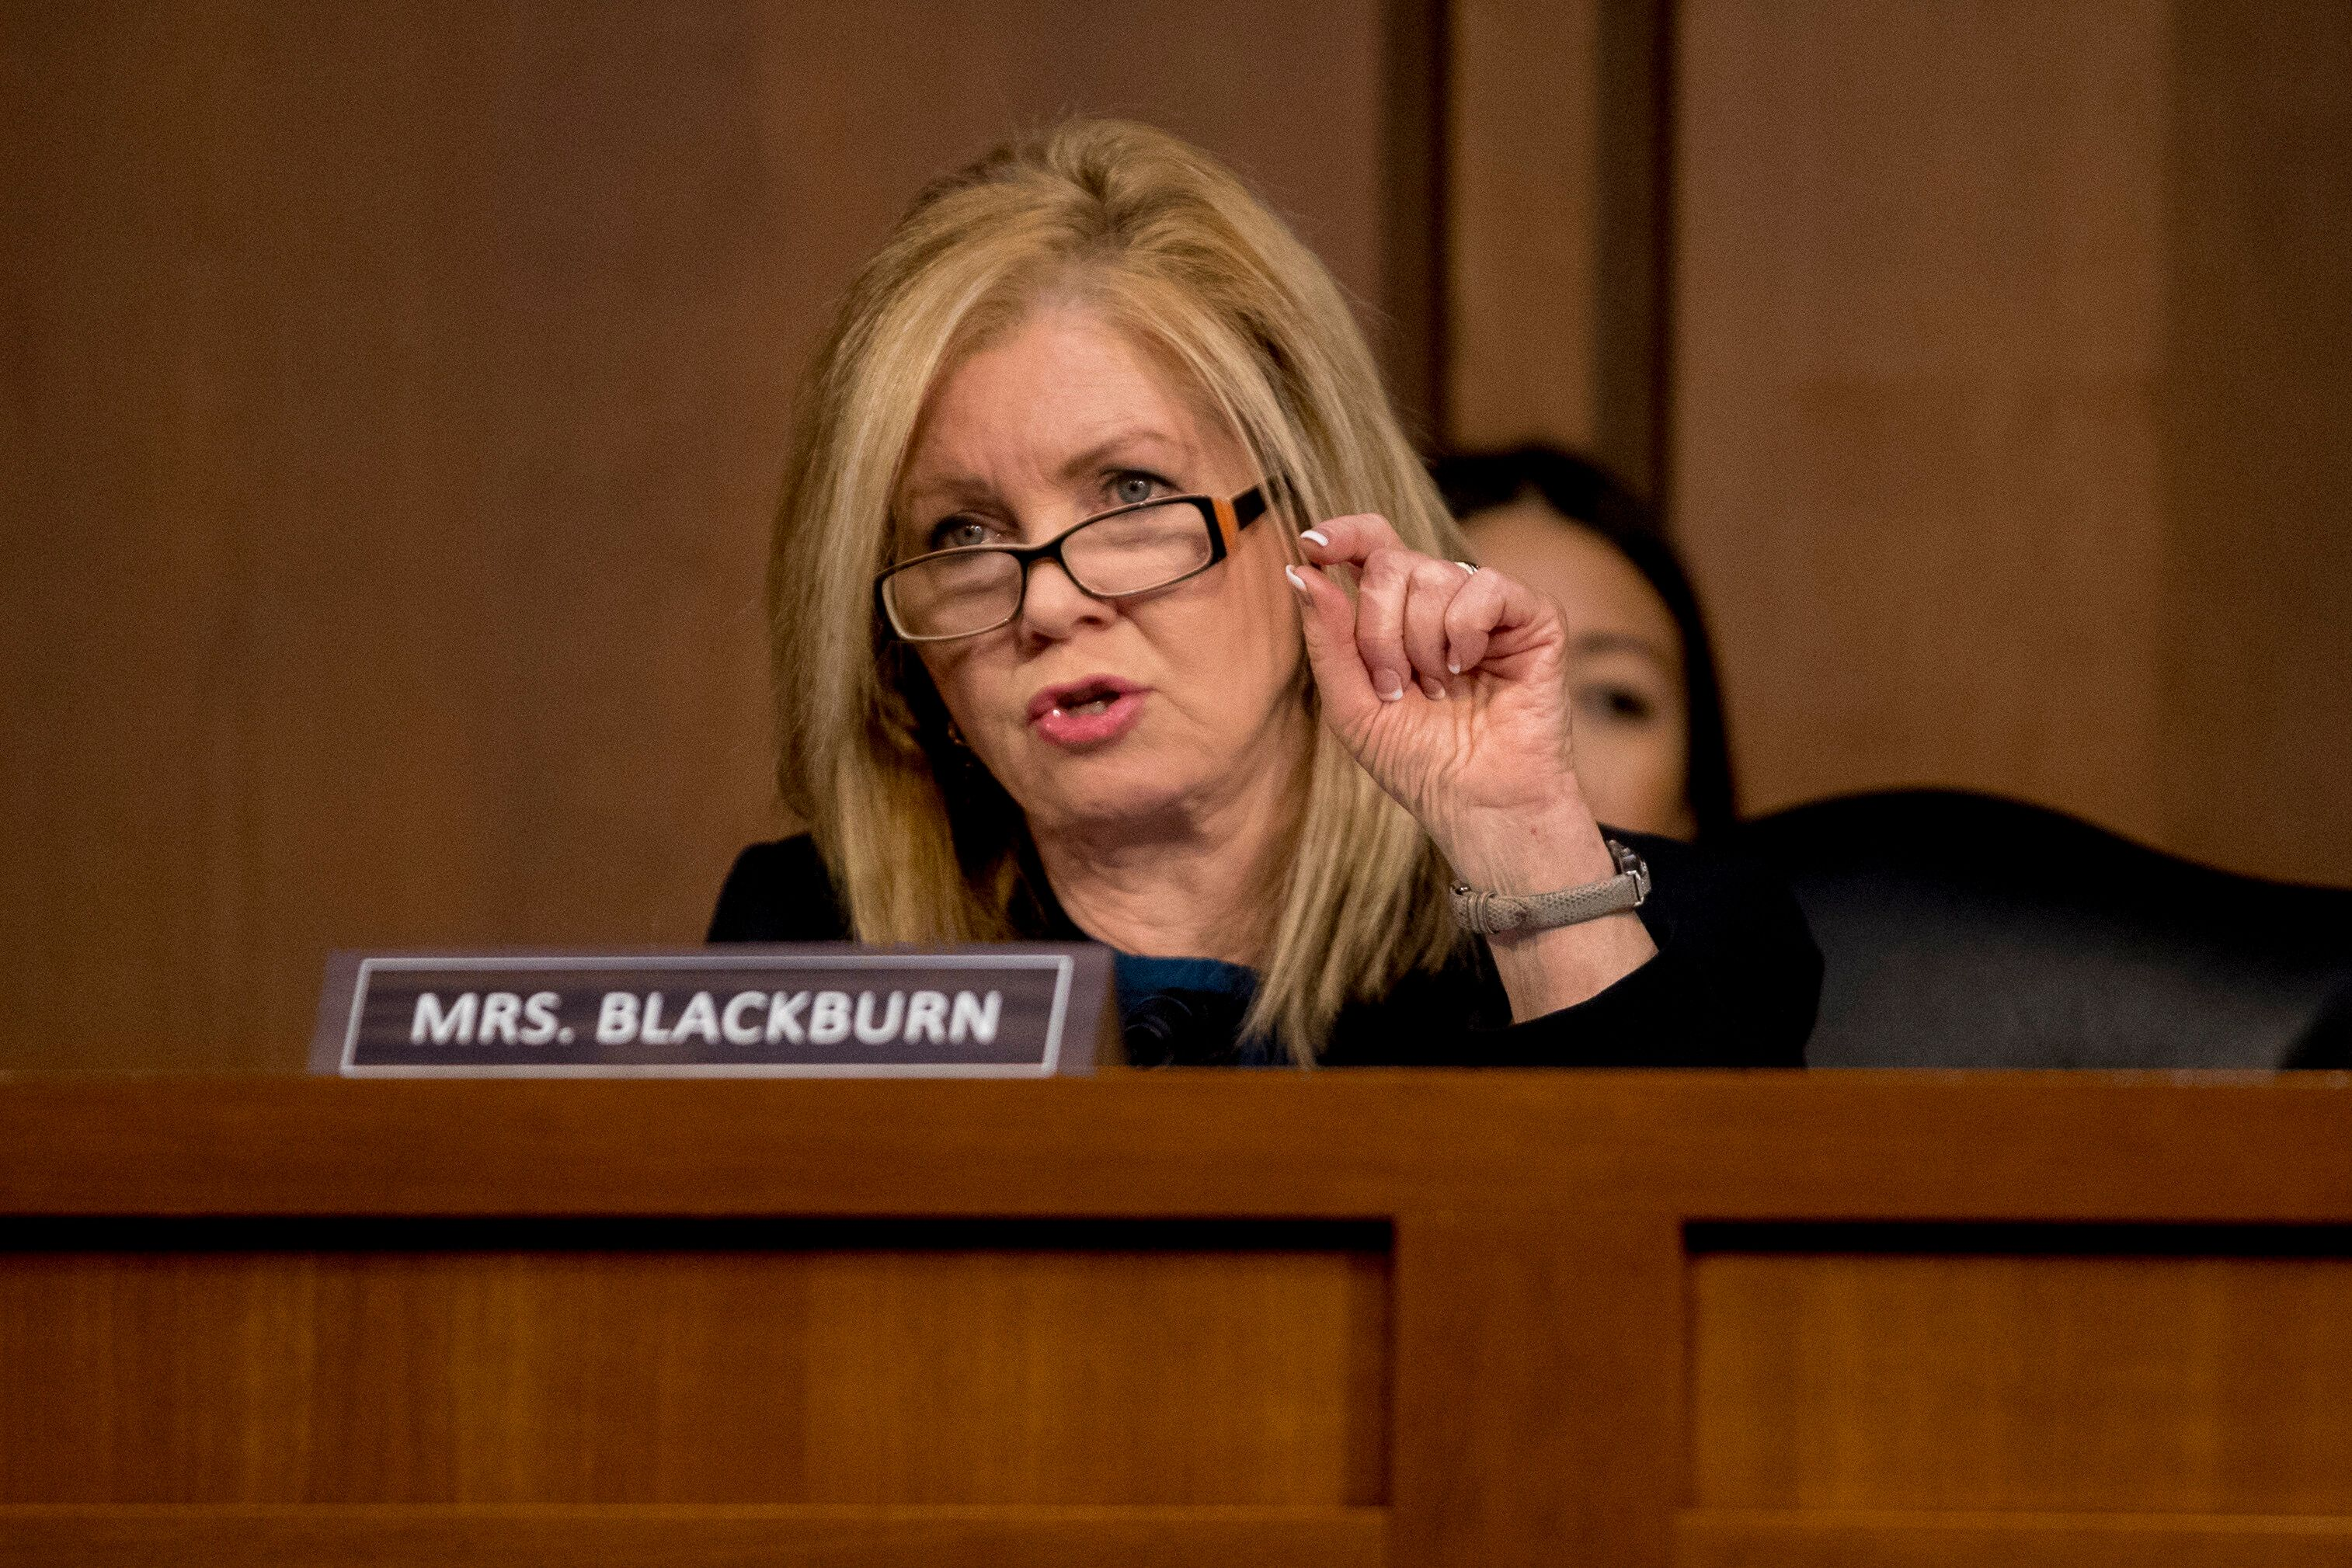 Sen. Marsha Blackburn objected to legislation that would require campaigns to report offers of foreign government assistance